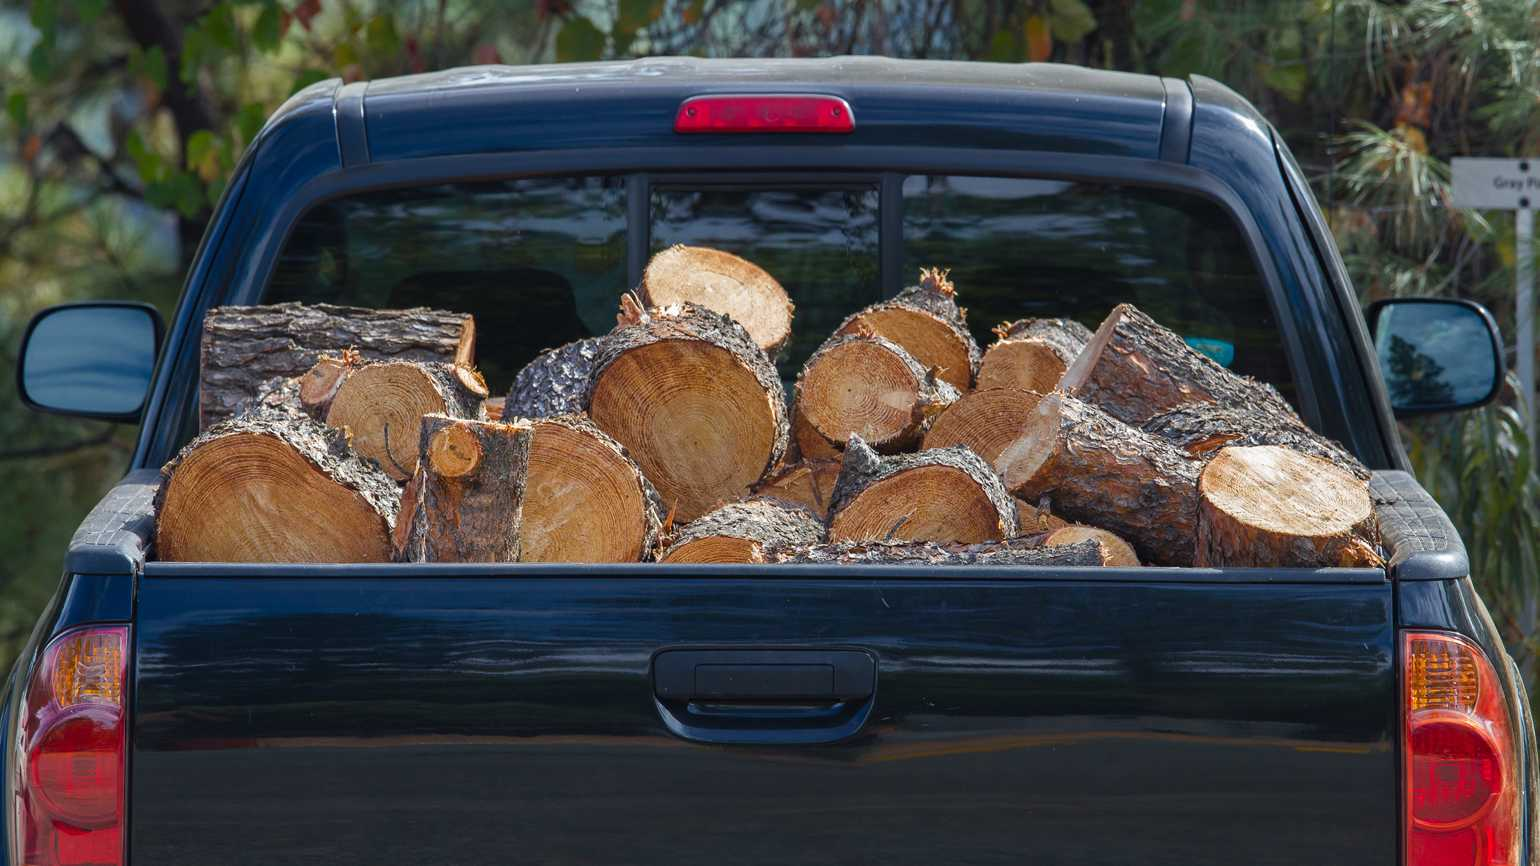 Part of a dark pickup truck trunk full of firewood logs